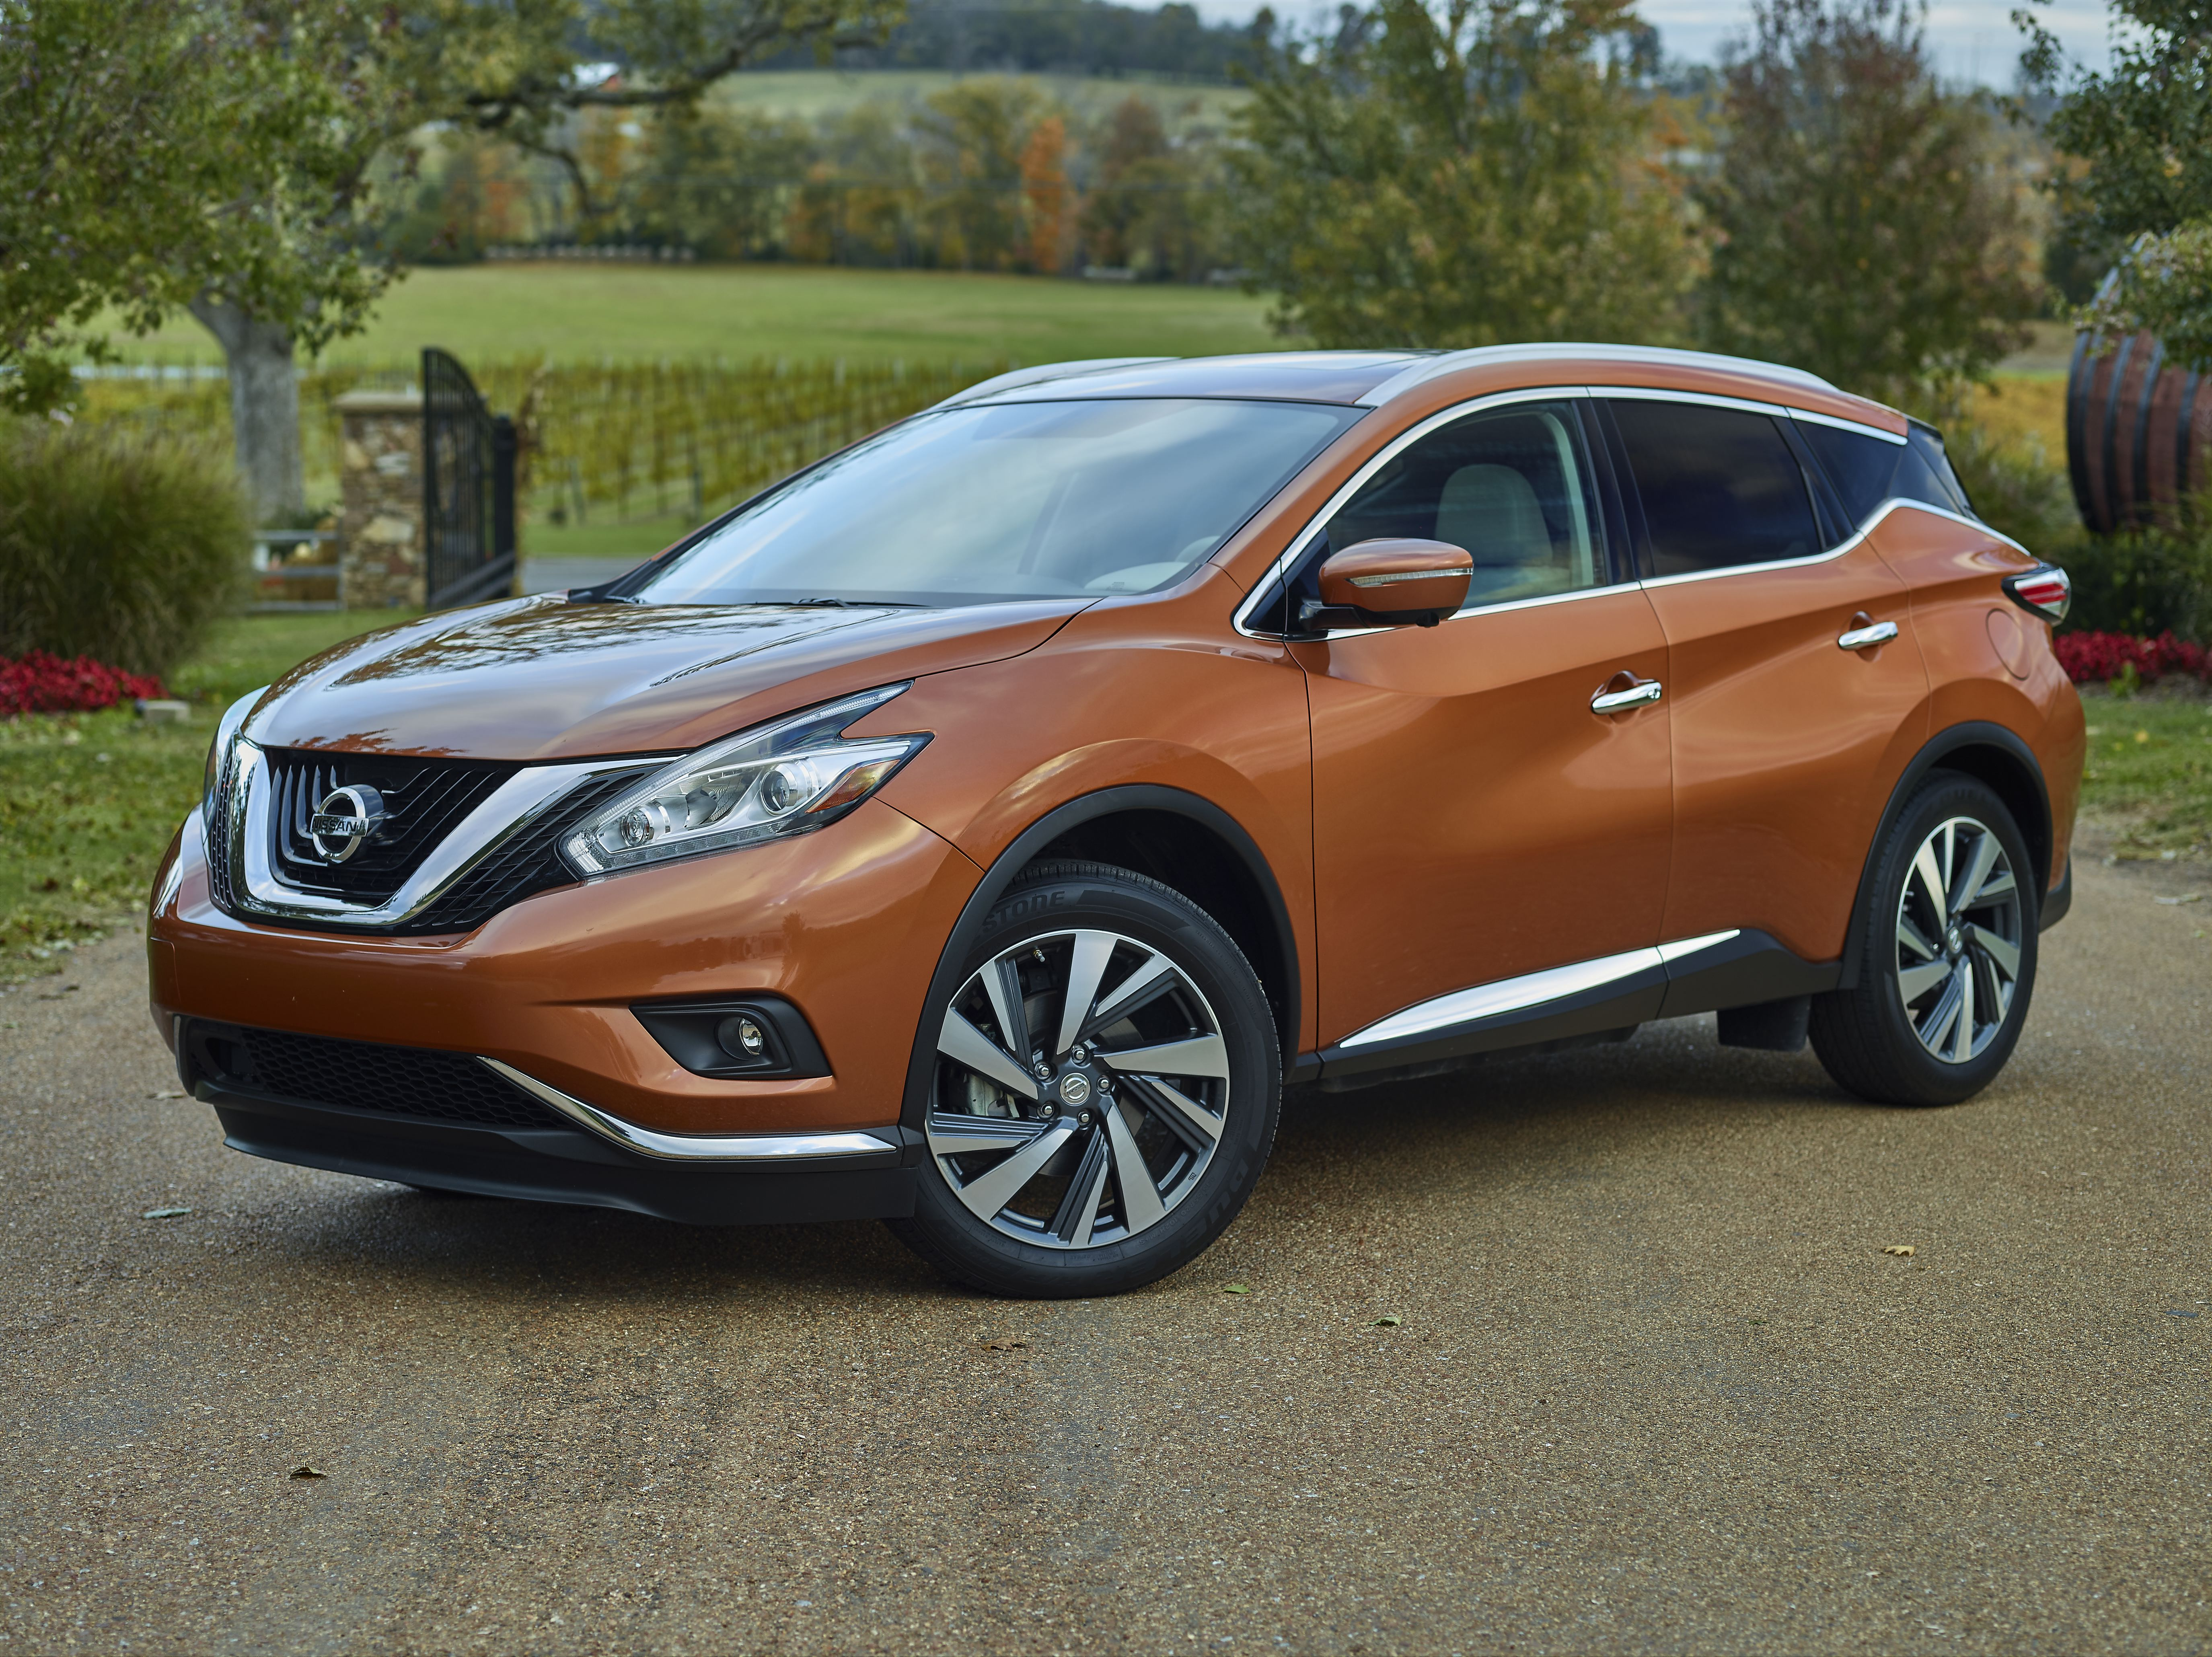 2015 Nissan Murano Rogue Select Recalled for Separate Issues